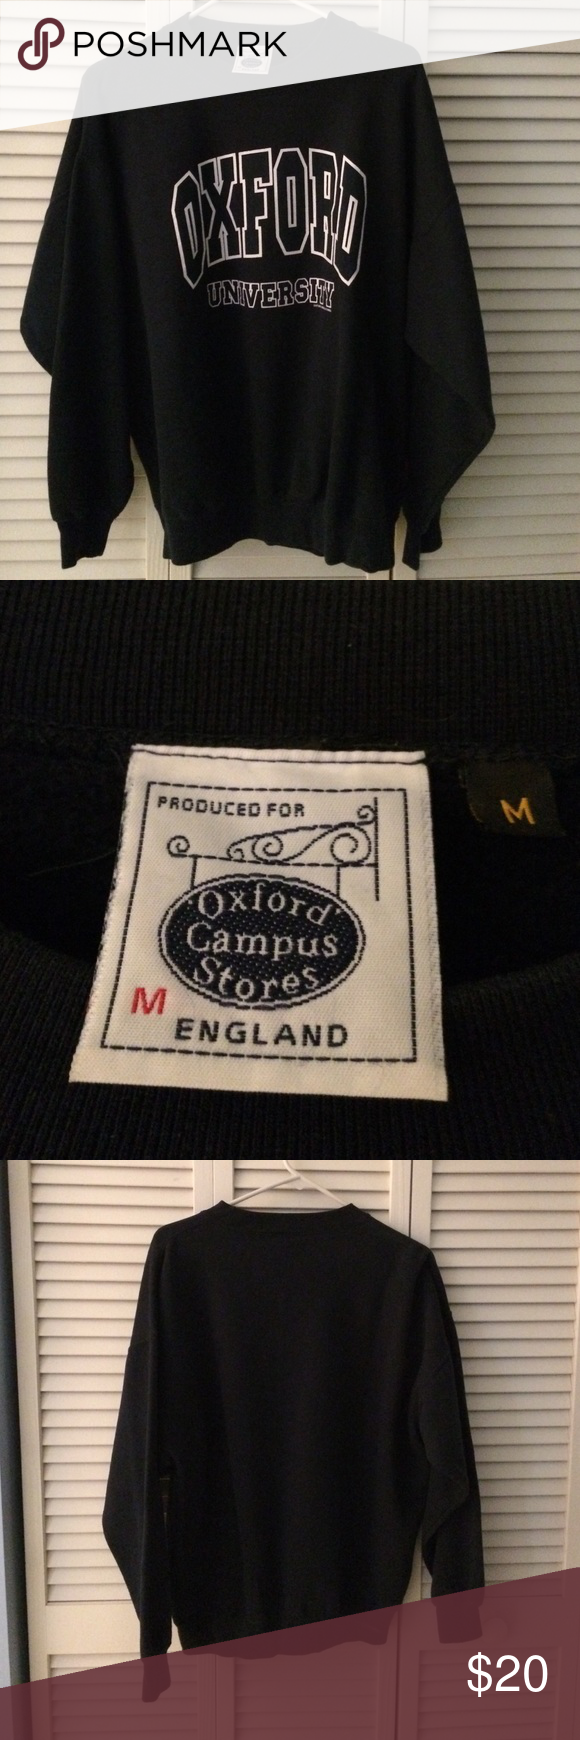 Oxford university crew neck sweatshirt Oxford university crew neck sweatshirt, size Medium, navy blue with white logo. Bought at the campus store in England. Only wore a few times, in good condition Oxford Campus Stores Sweaters Crew & Scoop Necks